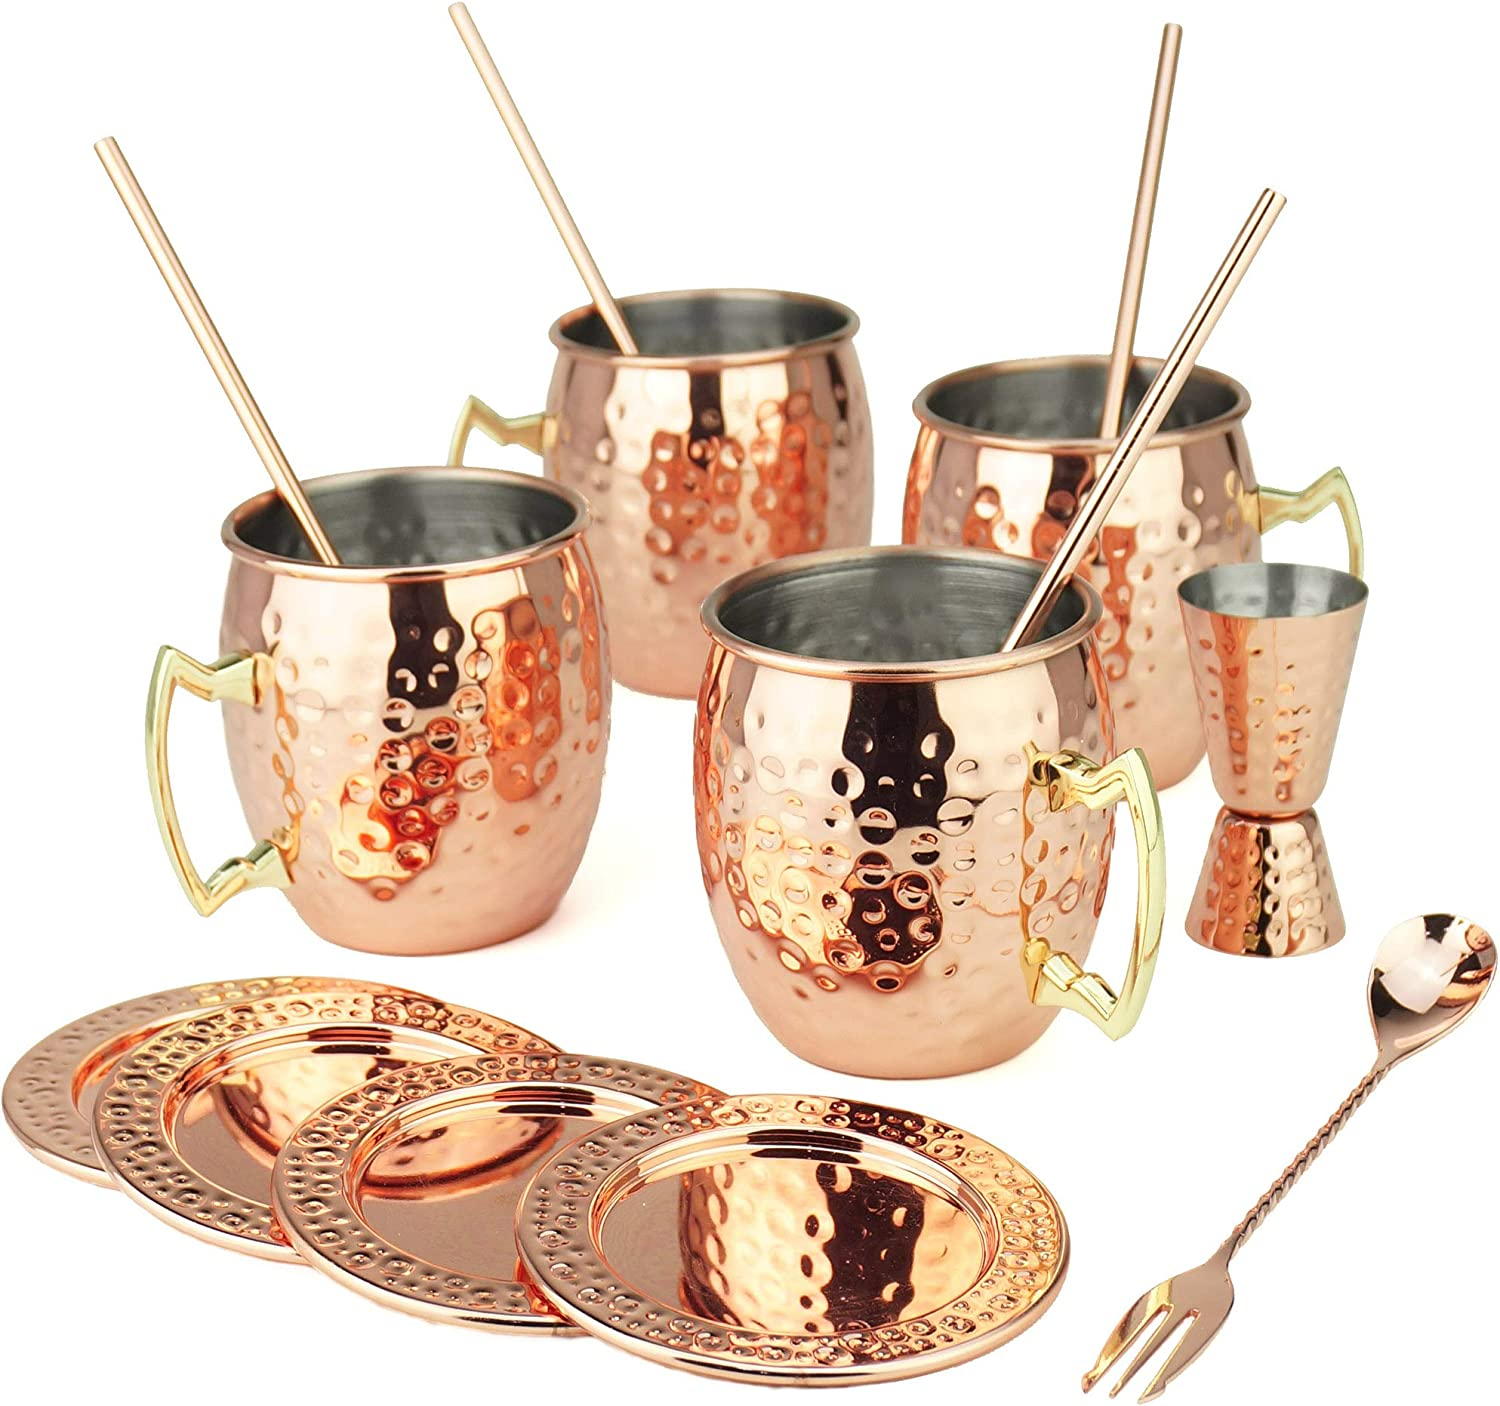 PG Moscow Mule/Cocktail Bar Set, 15-pc Copper/Rose Gold Color, High Grade SS, w/4x Moscow Mule Mugs, 4x Straws w/cleaner, 4x REAL STAINLESS Coasters, 1x Double-Jigger 1x Double-head Stirrer